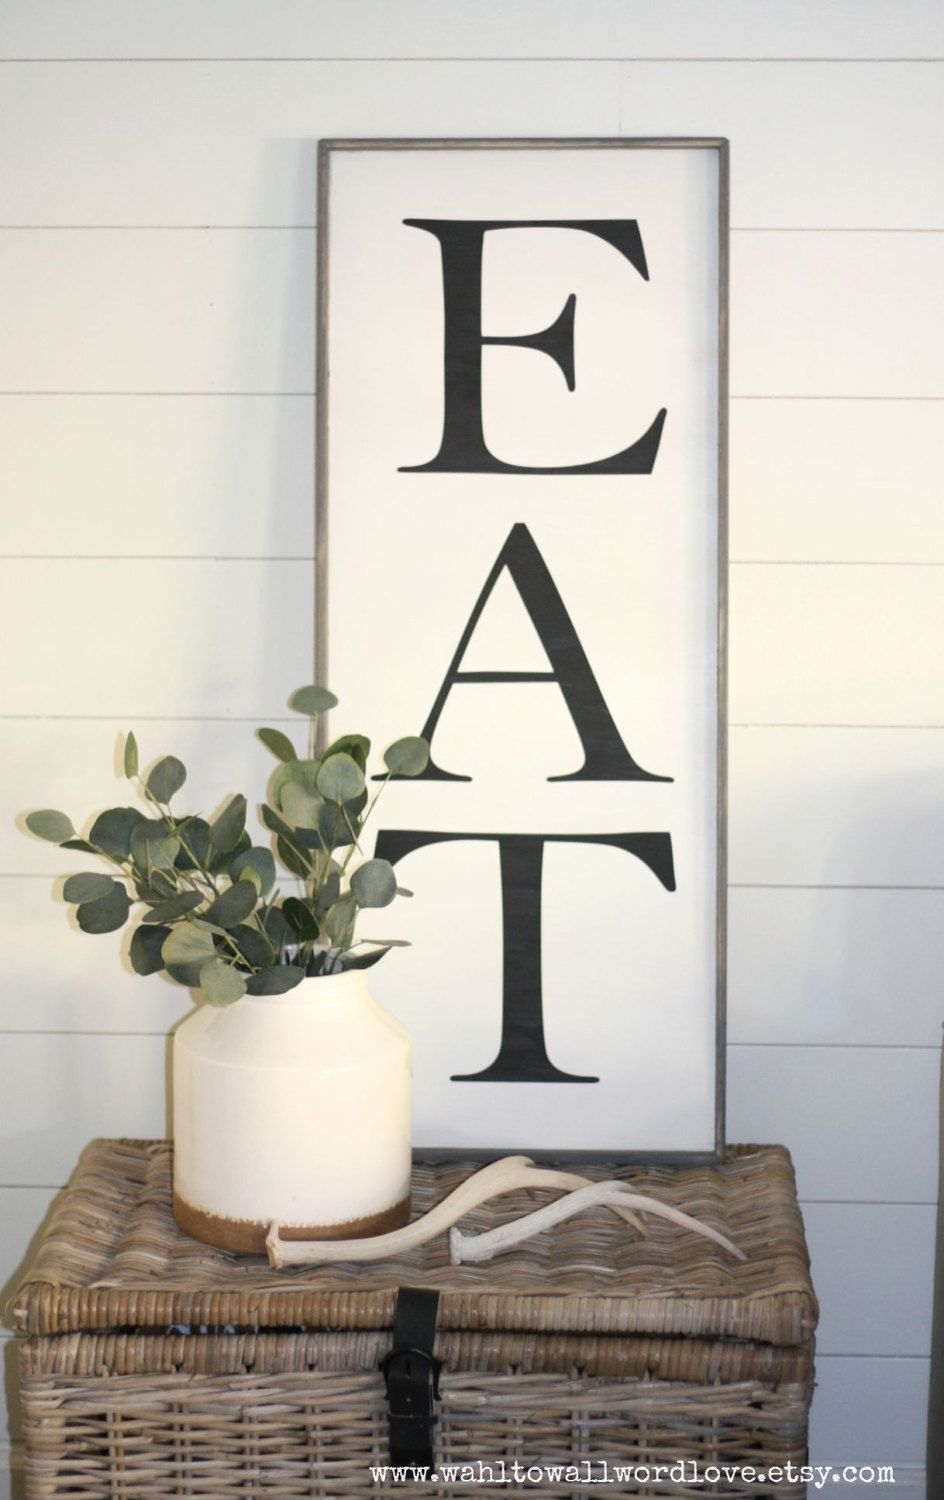 Eat Sign Medium Eat Wooden Sign 12 By 24 Kitchen Wall Decor Kitchen Wood Eat Sign Rustic Vintage Style H Kitchen Wall Art Diy Eat Sign Diy Dining